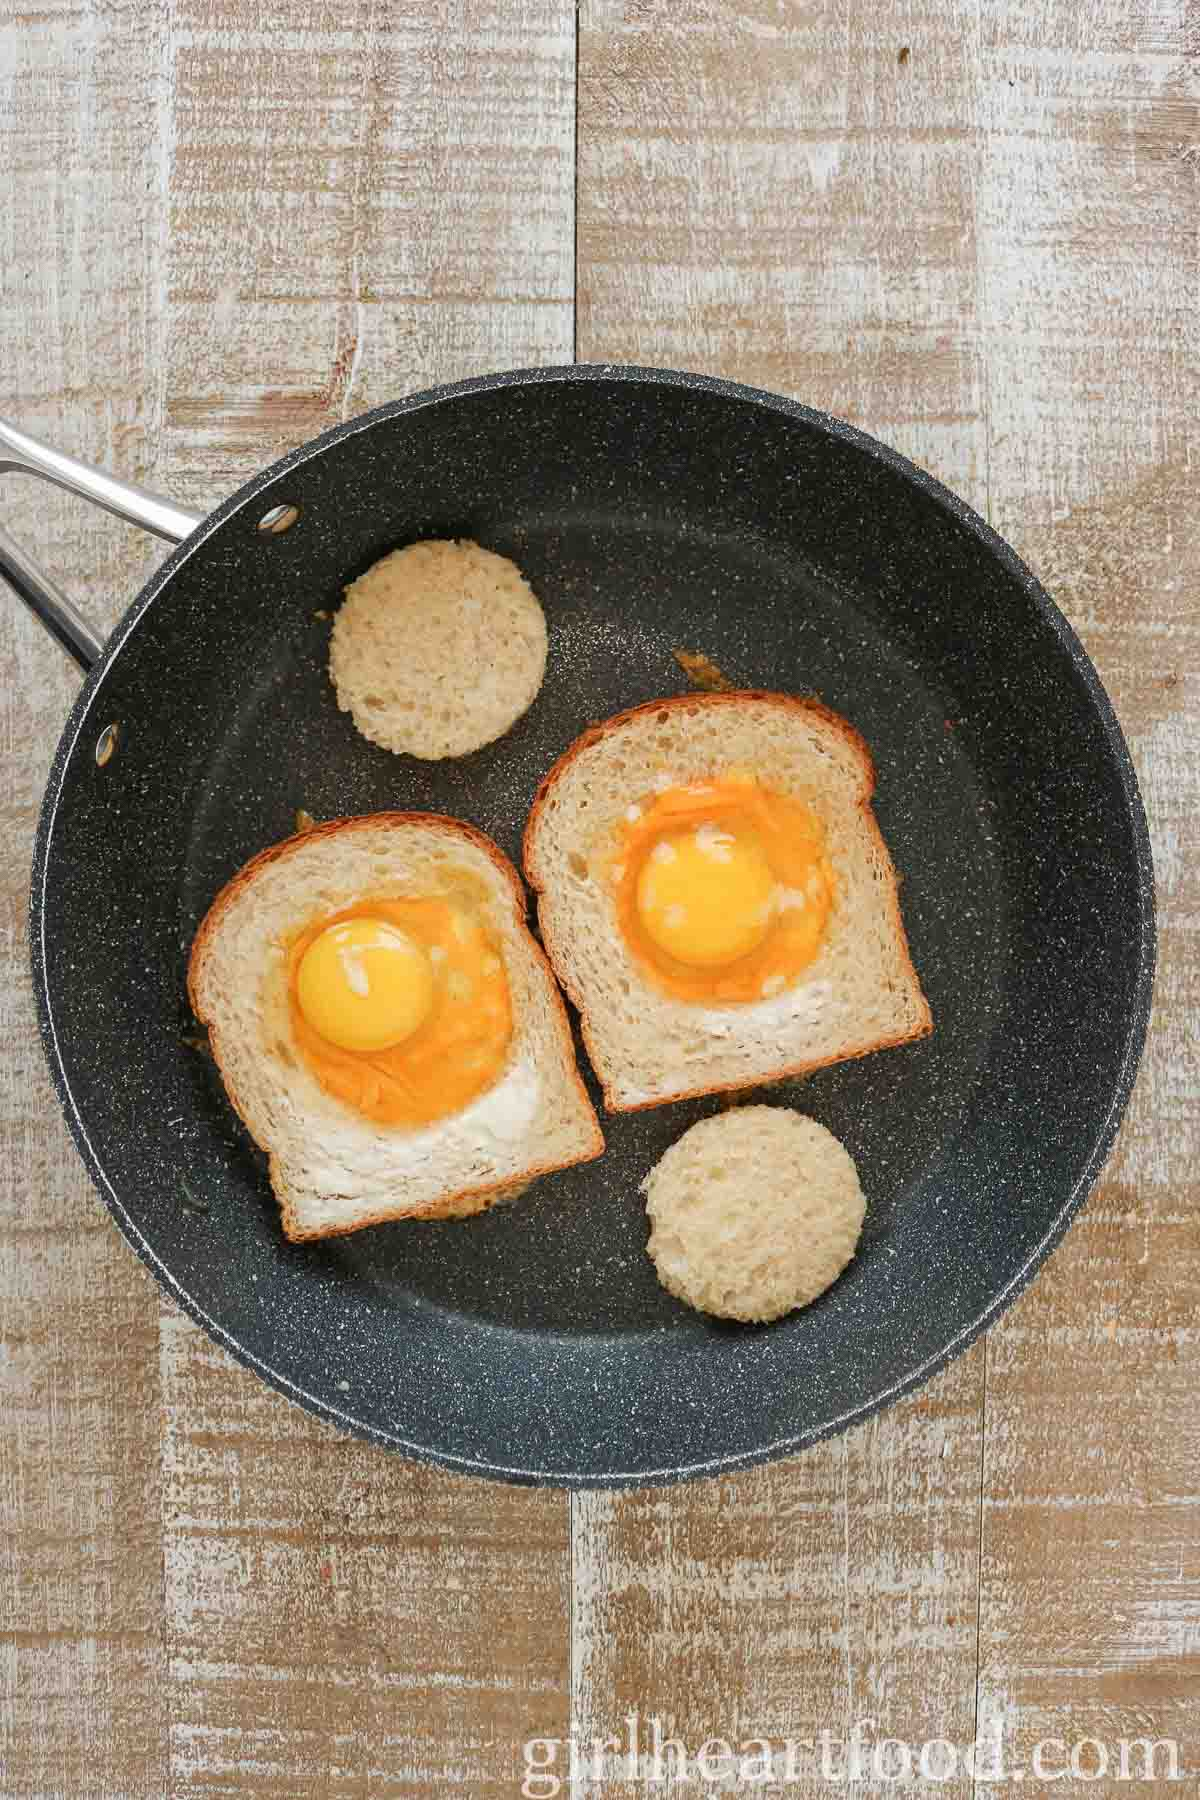 Two portions of egg-in-a-hole in a non-stick pan, not yet cooked.